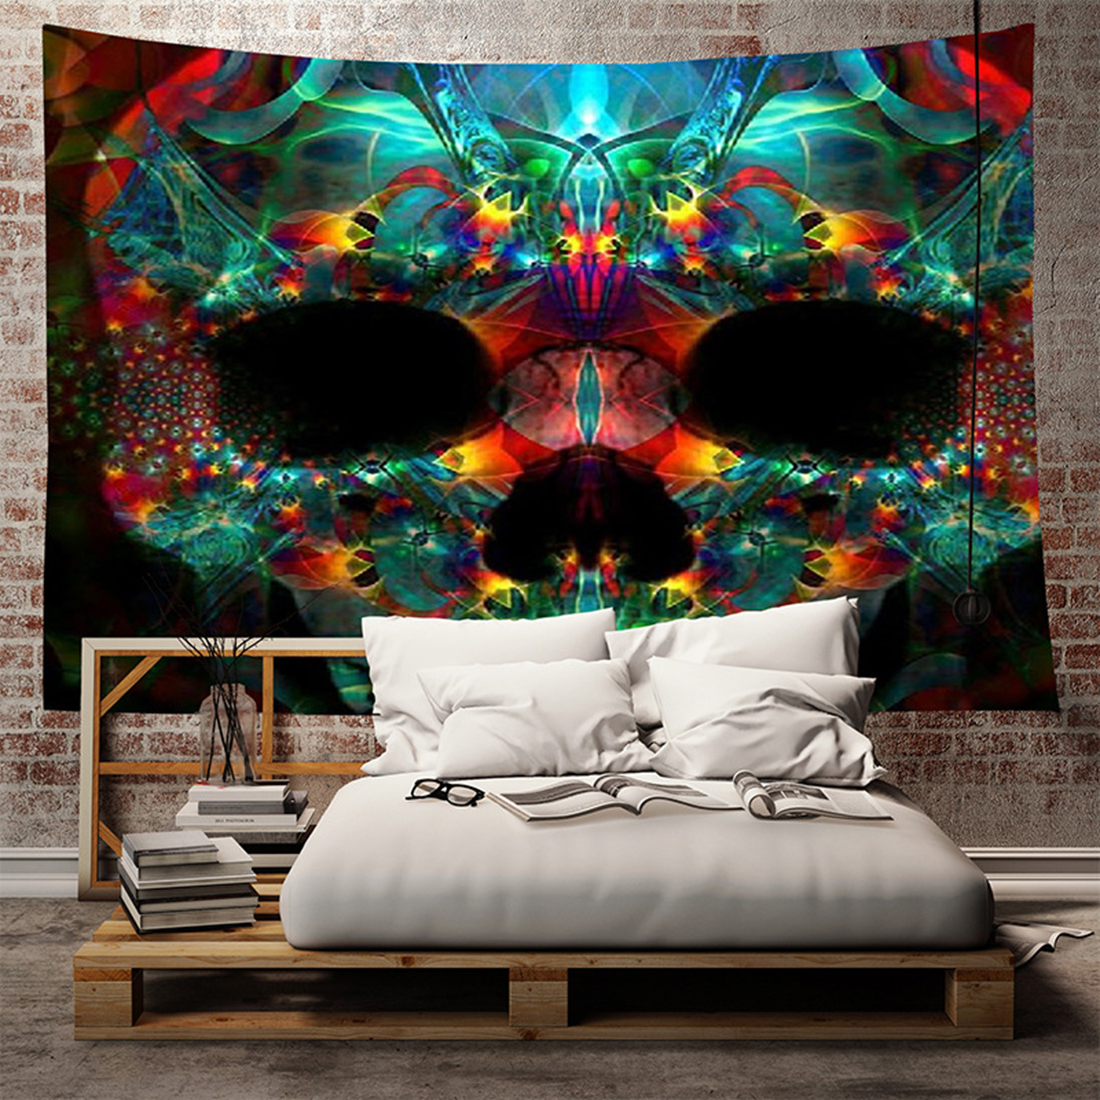 Hanging Home Decor: Colorful Skull Tapestry Colored Printed Decorative Indian